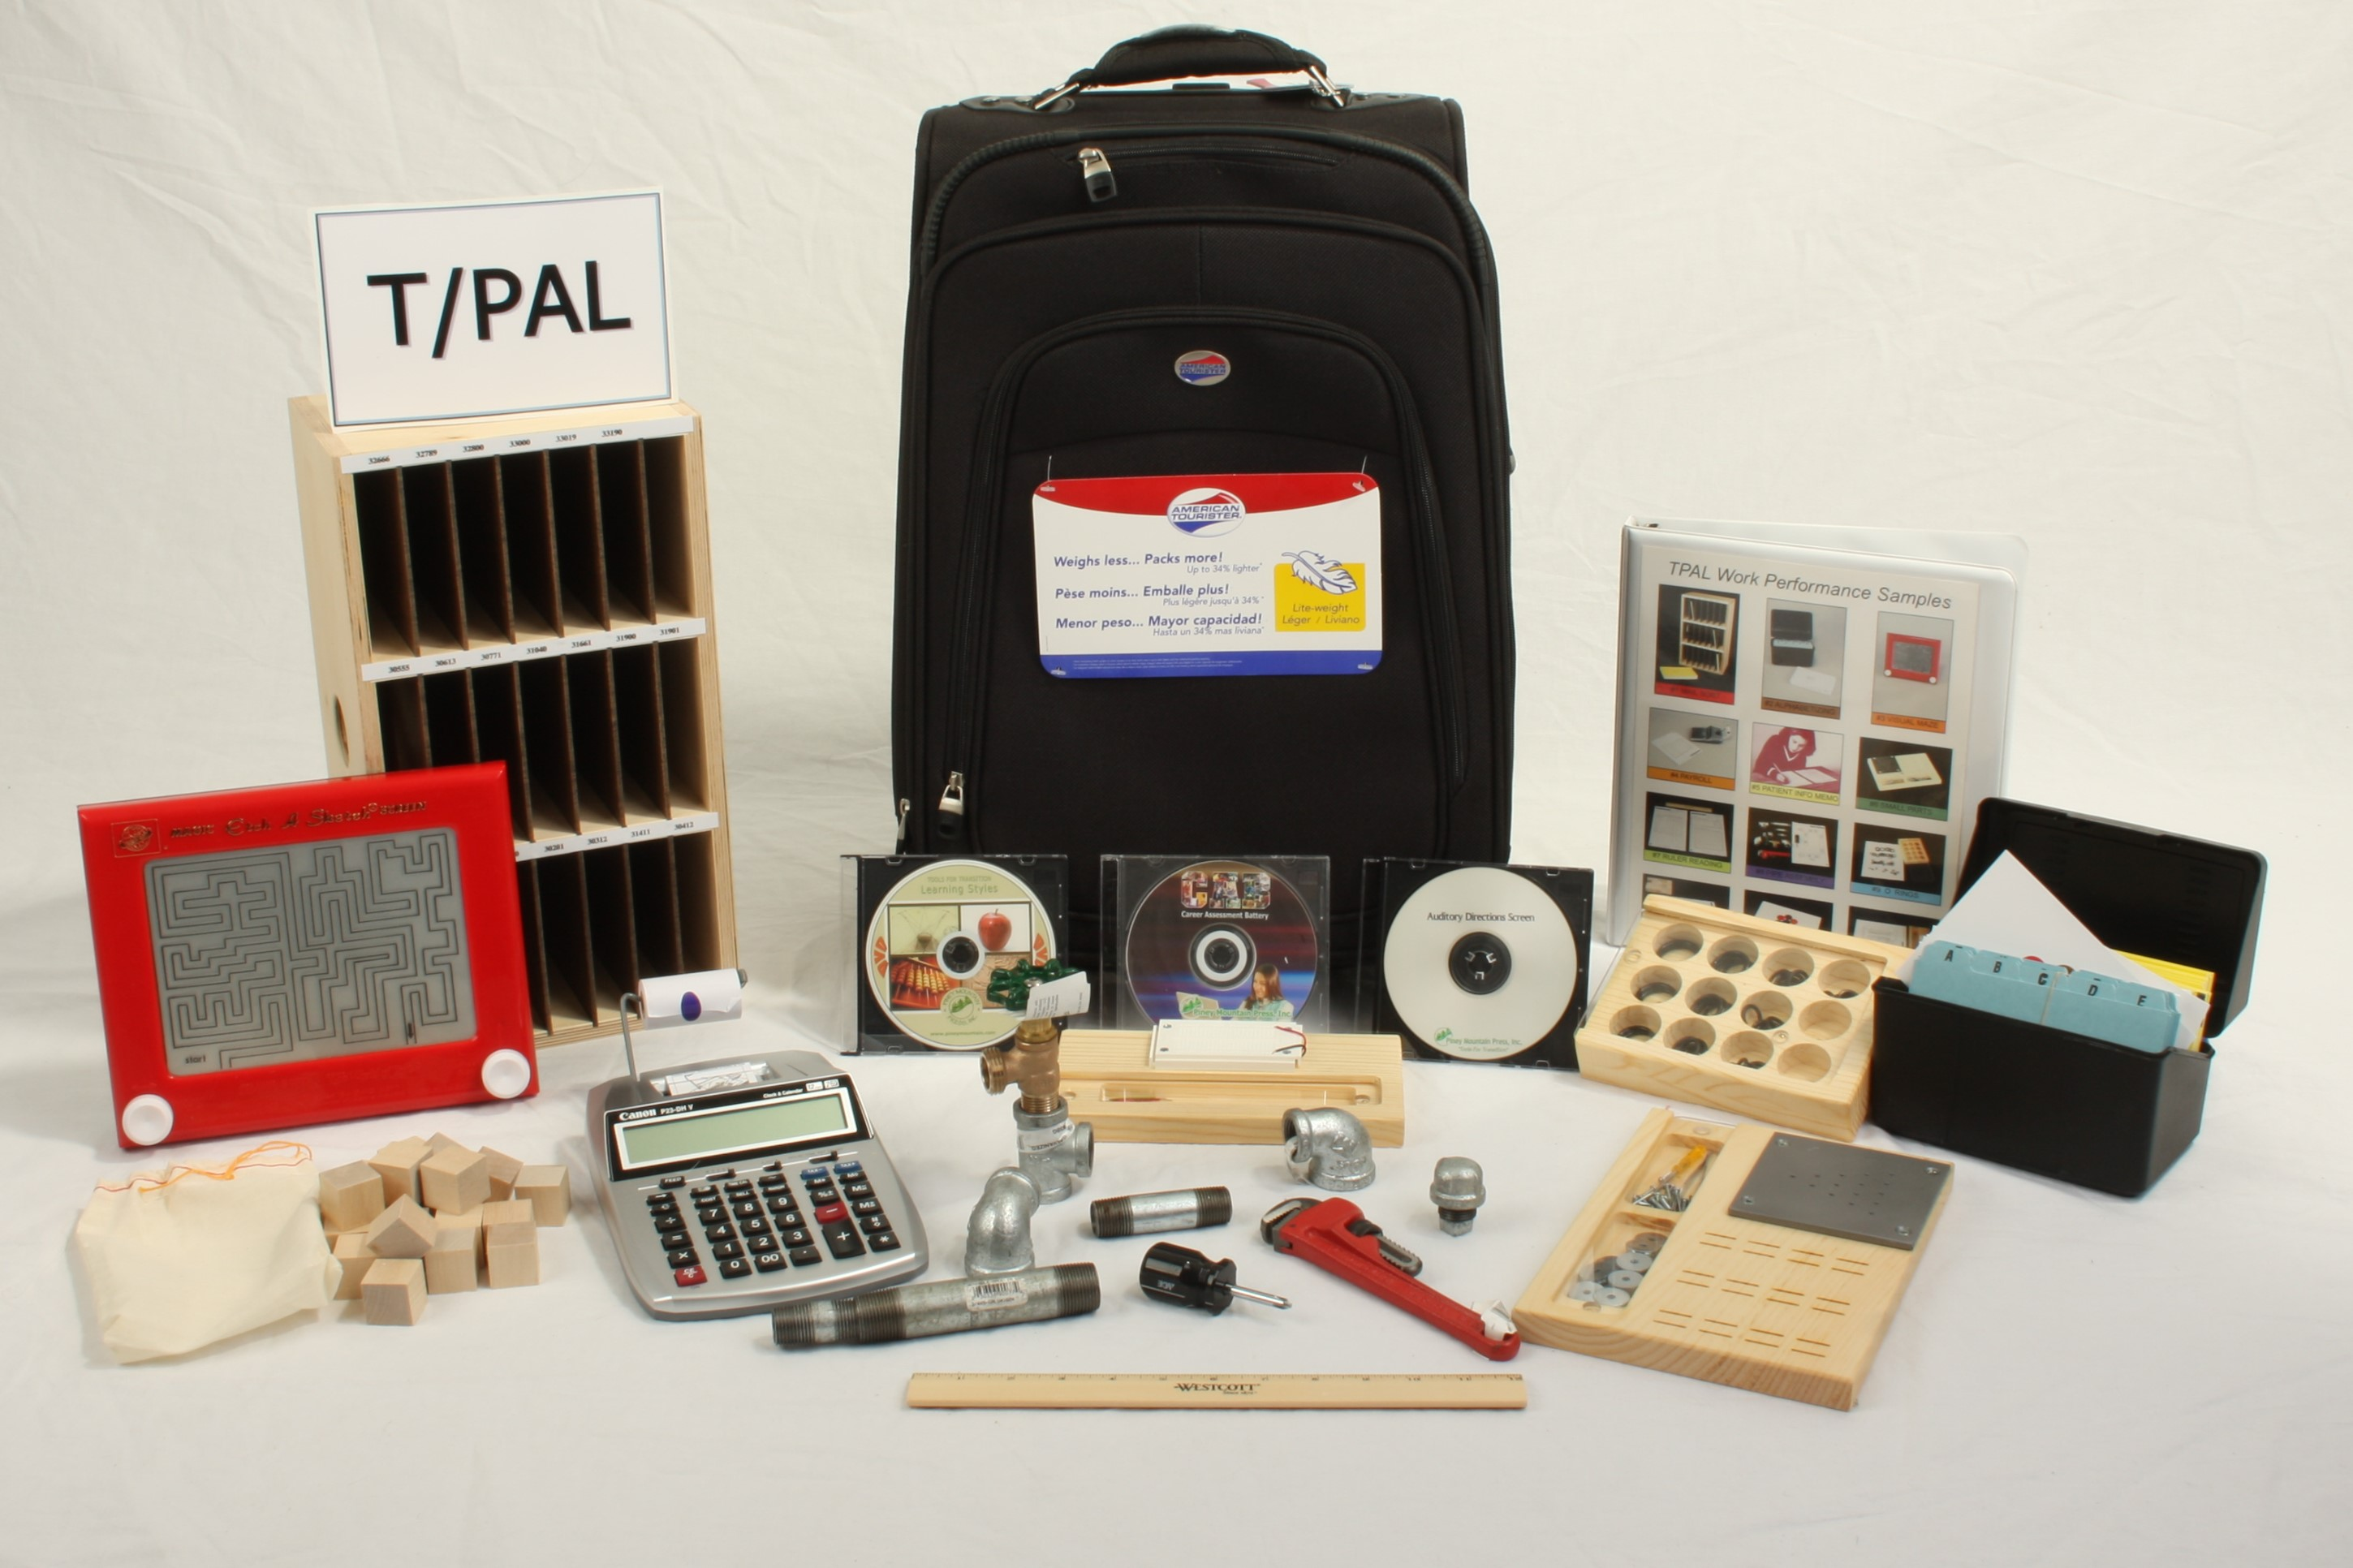 T/PAL the Therapists Portable Assessment Laboratory